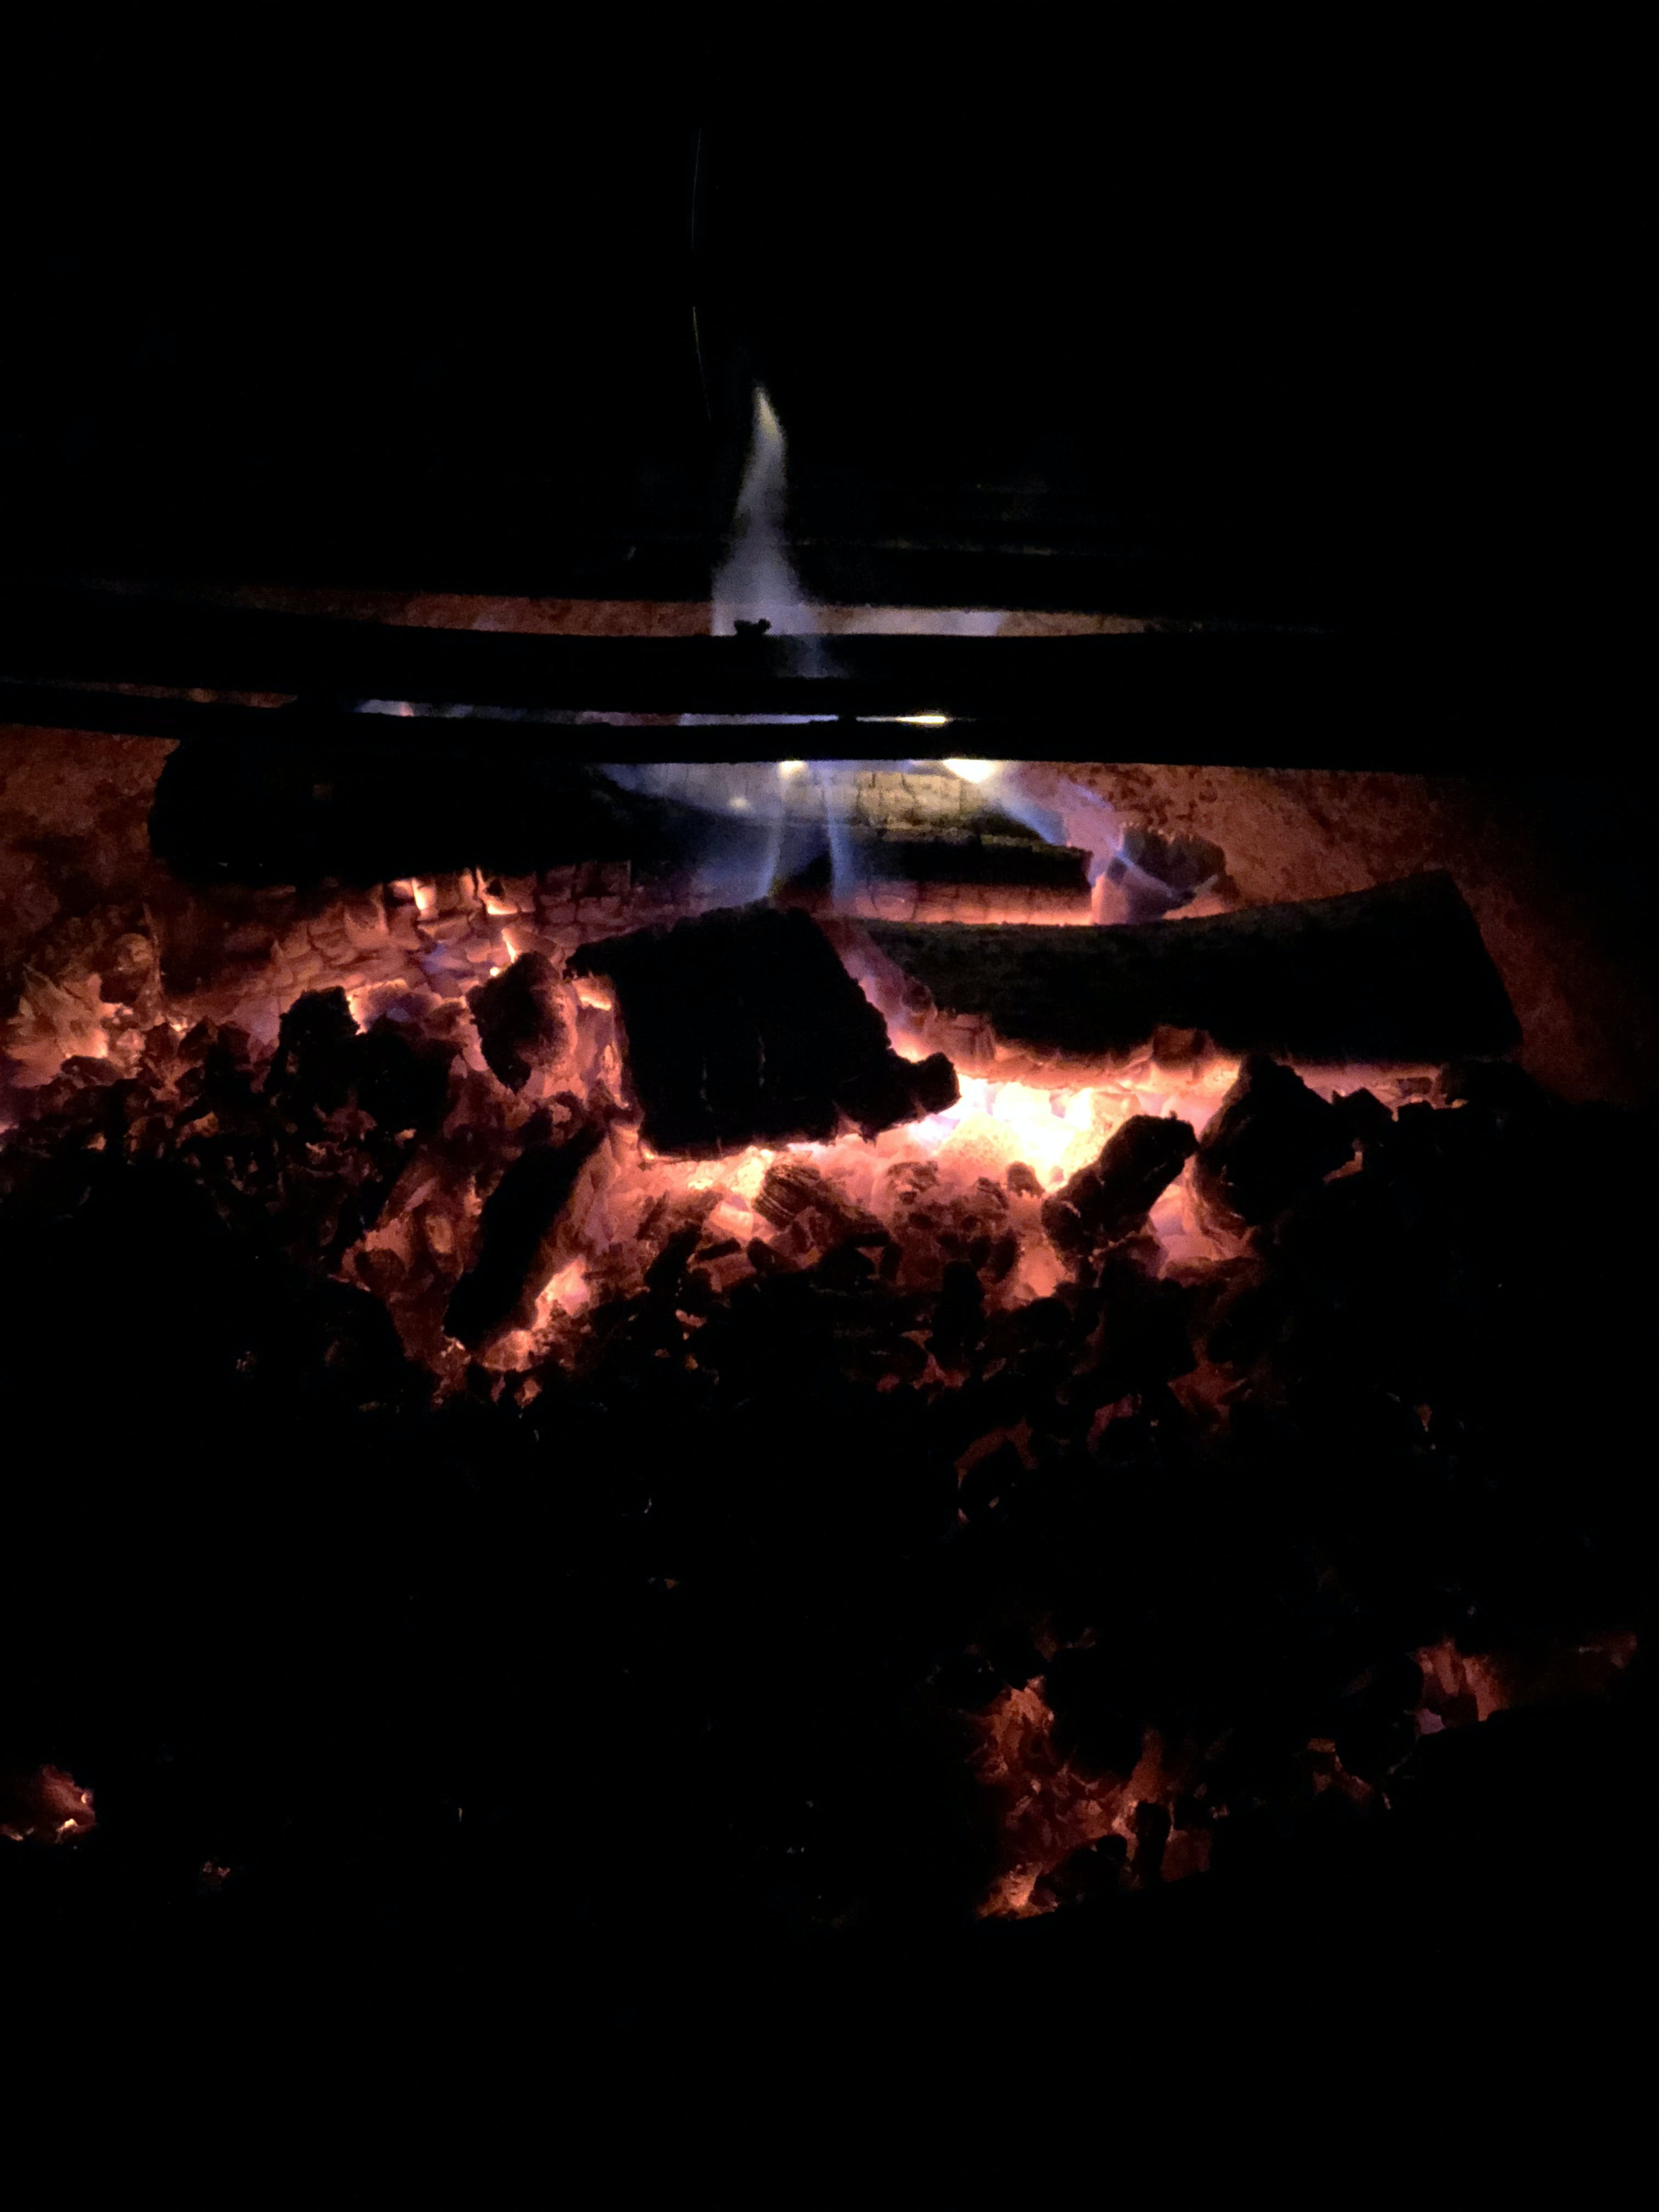 Free stock photo of campfire, camping, embers, fire